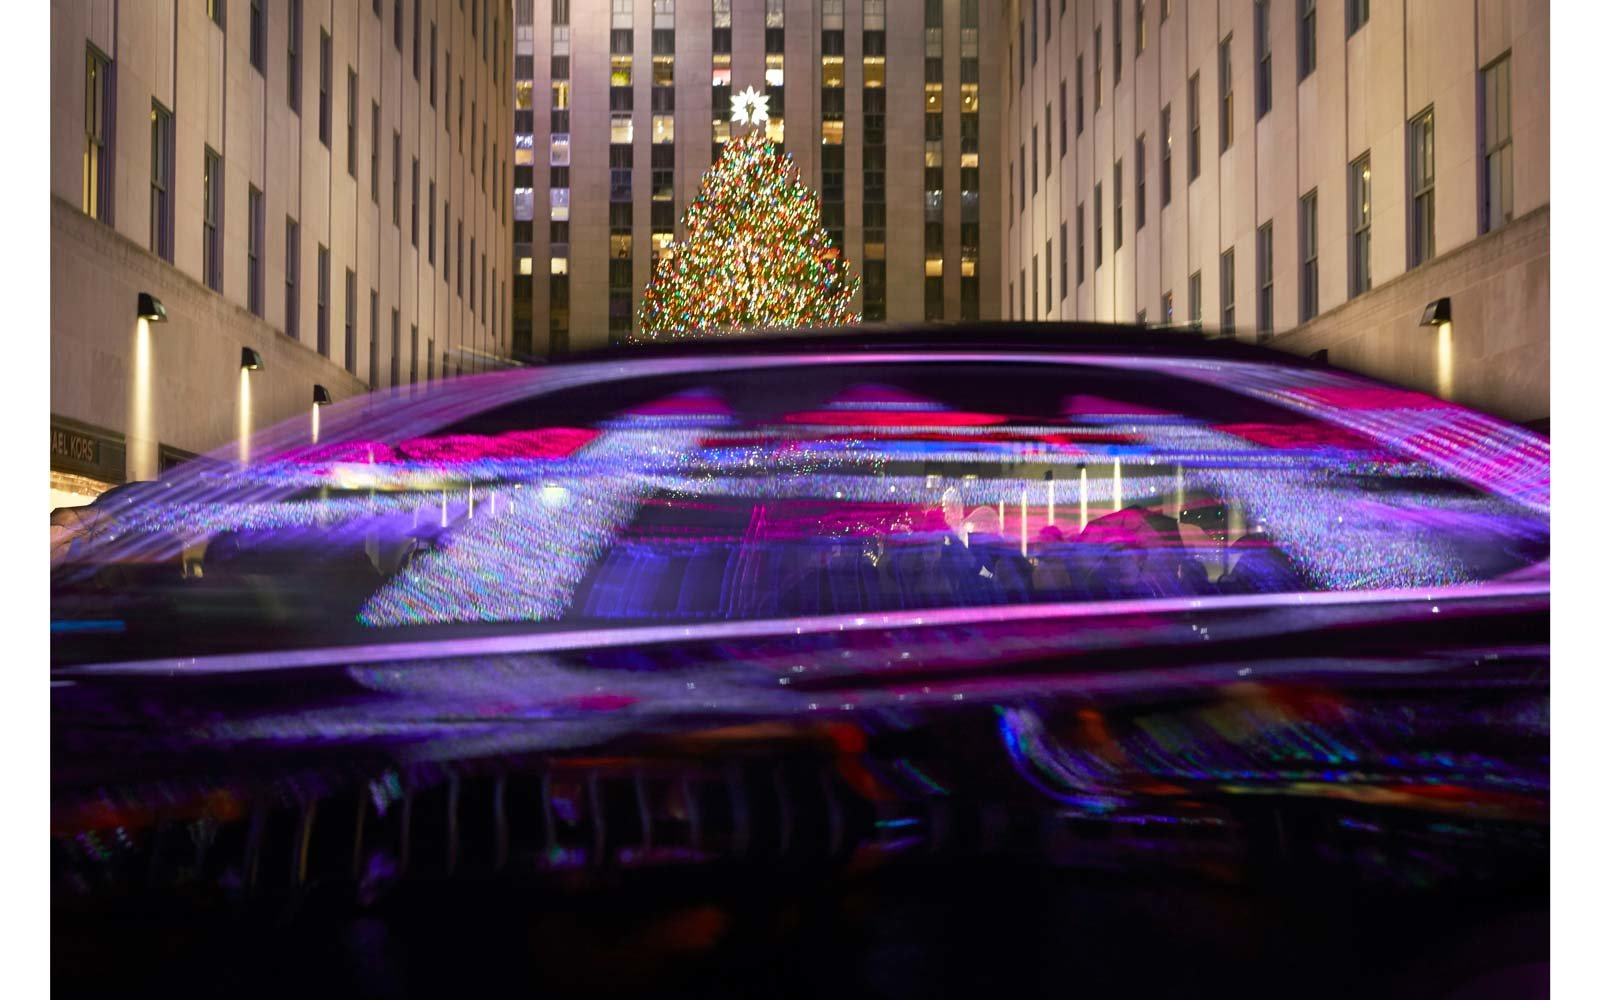 The tree at Rockefeller Center with the Saks windows in reflection